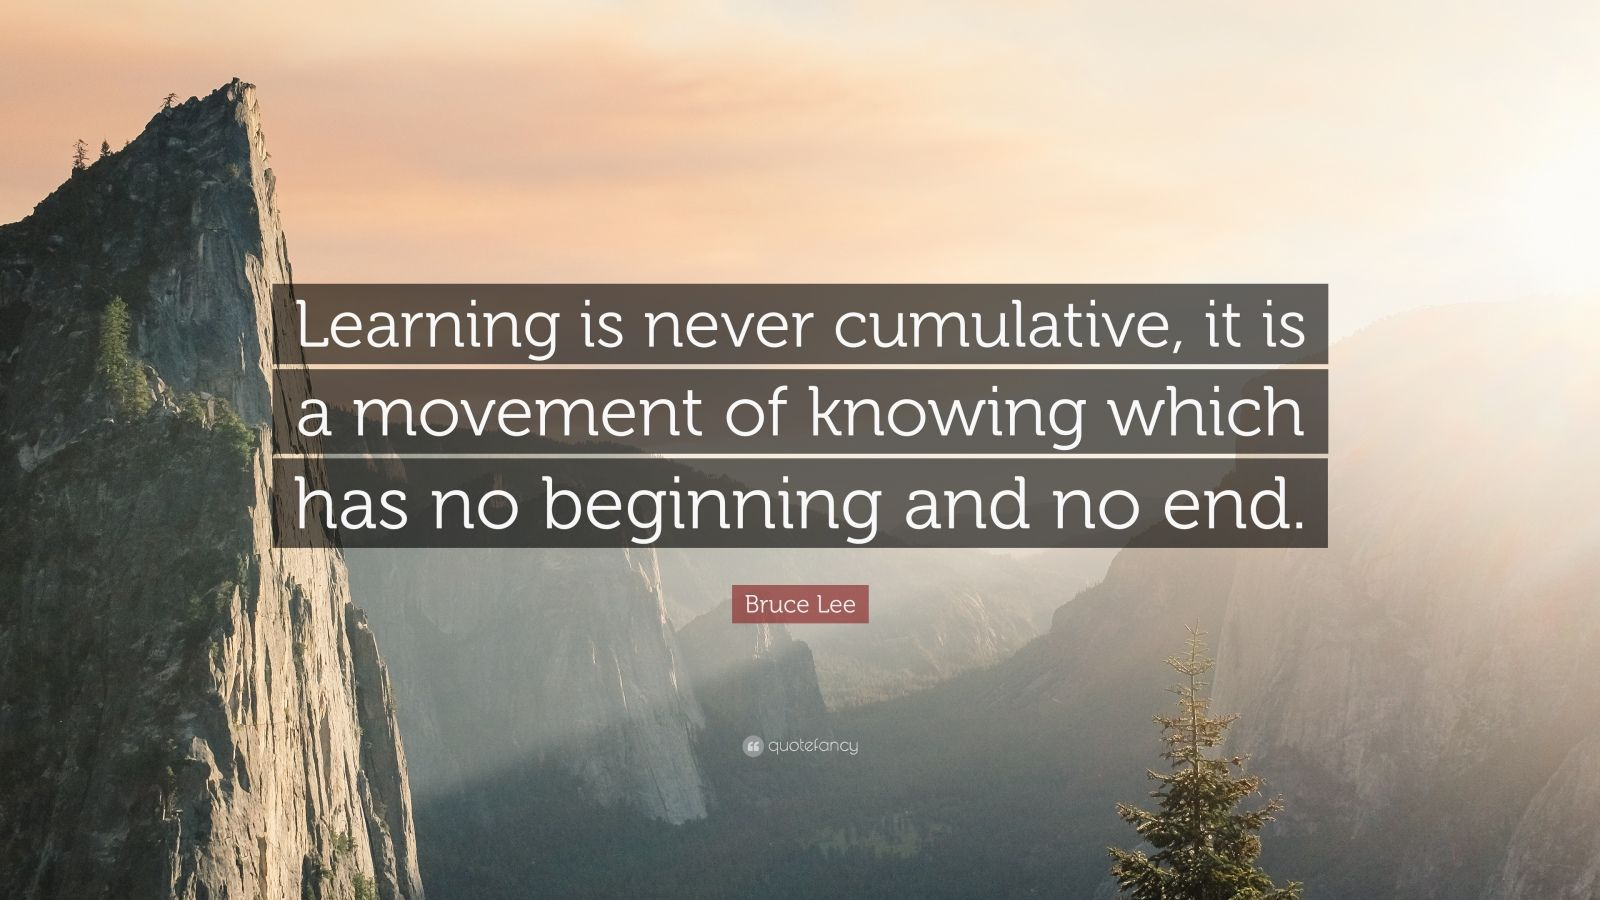 """Bruce Lee Quote: """"Learning is never cumulative, it is a movement of knowing which has no beginning and no end."""""""